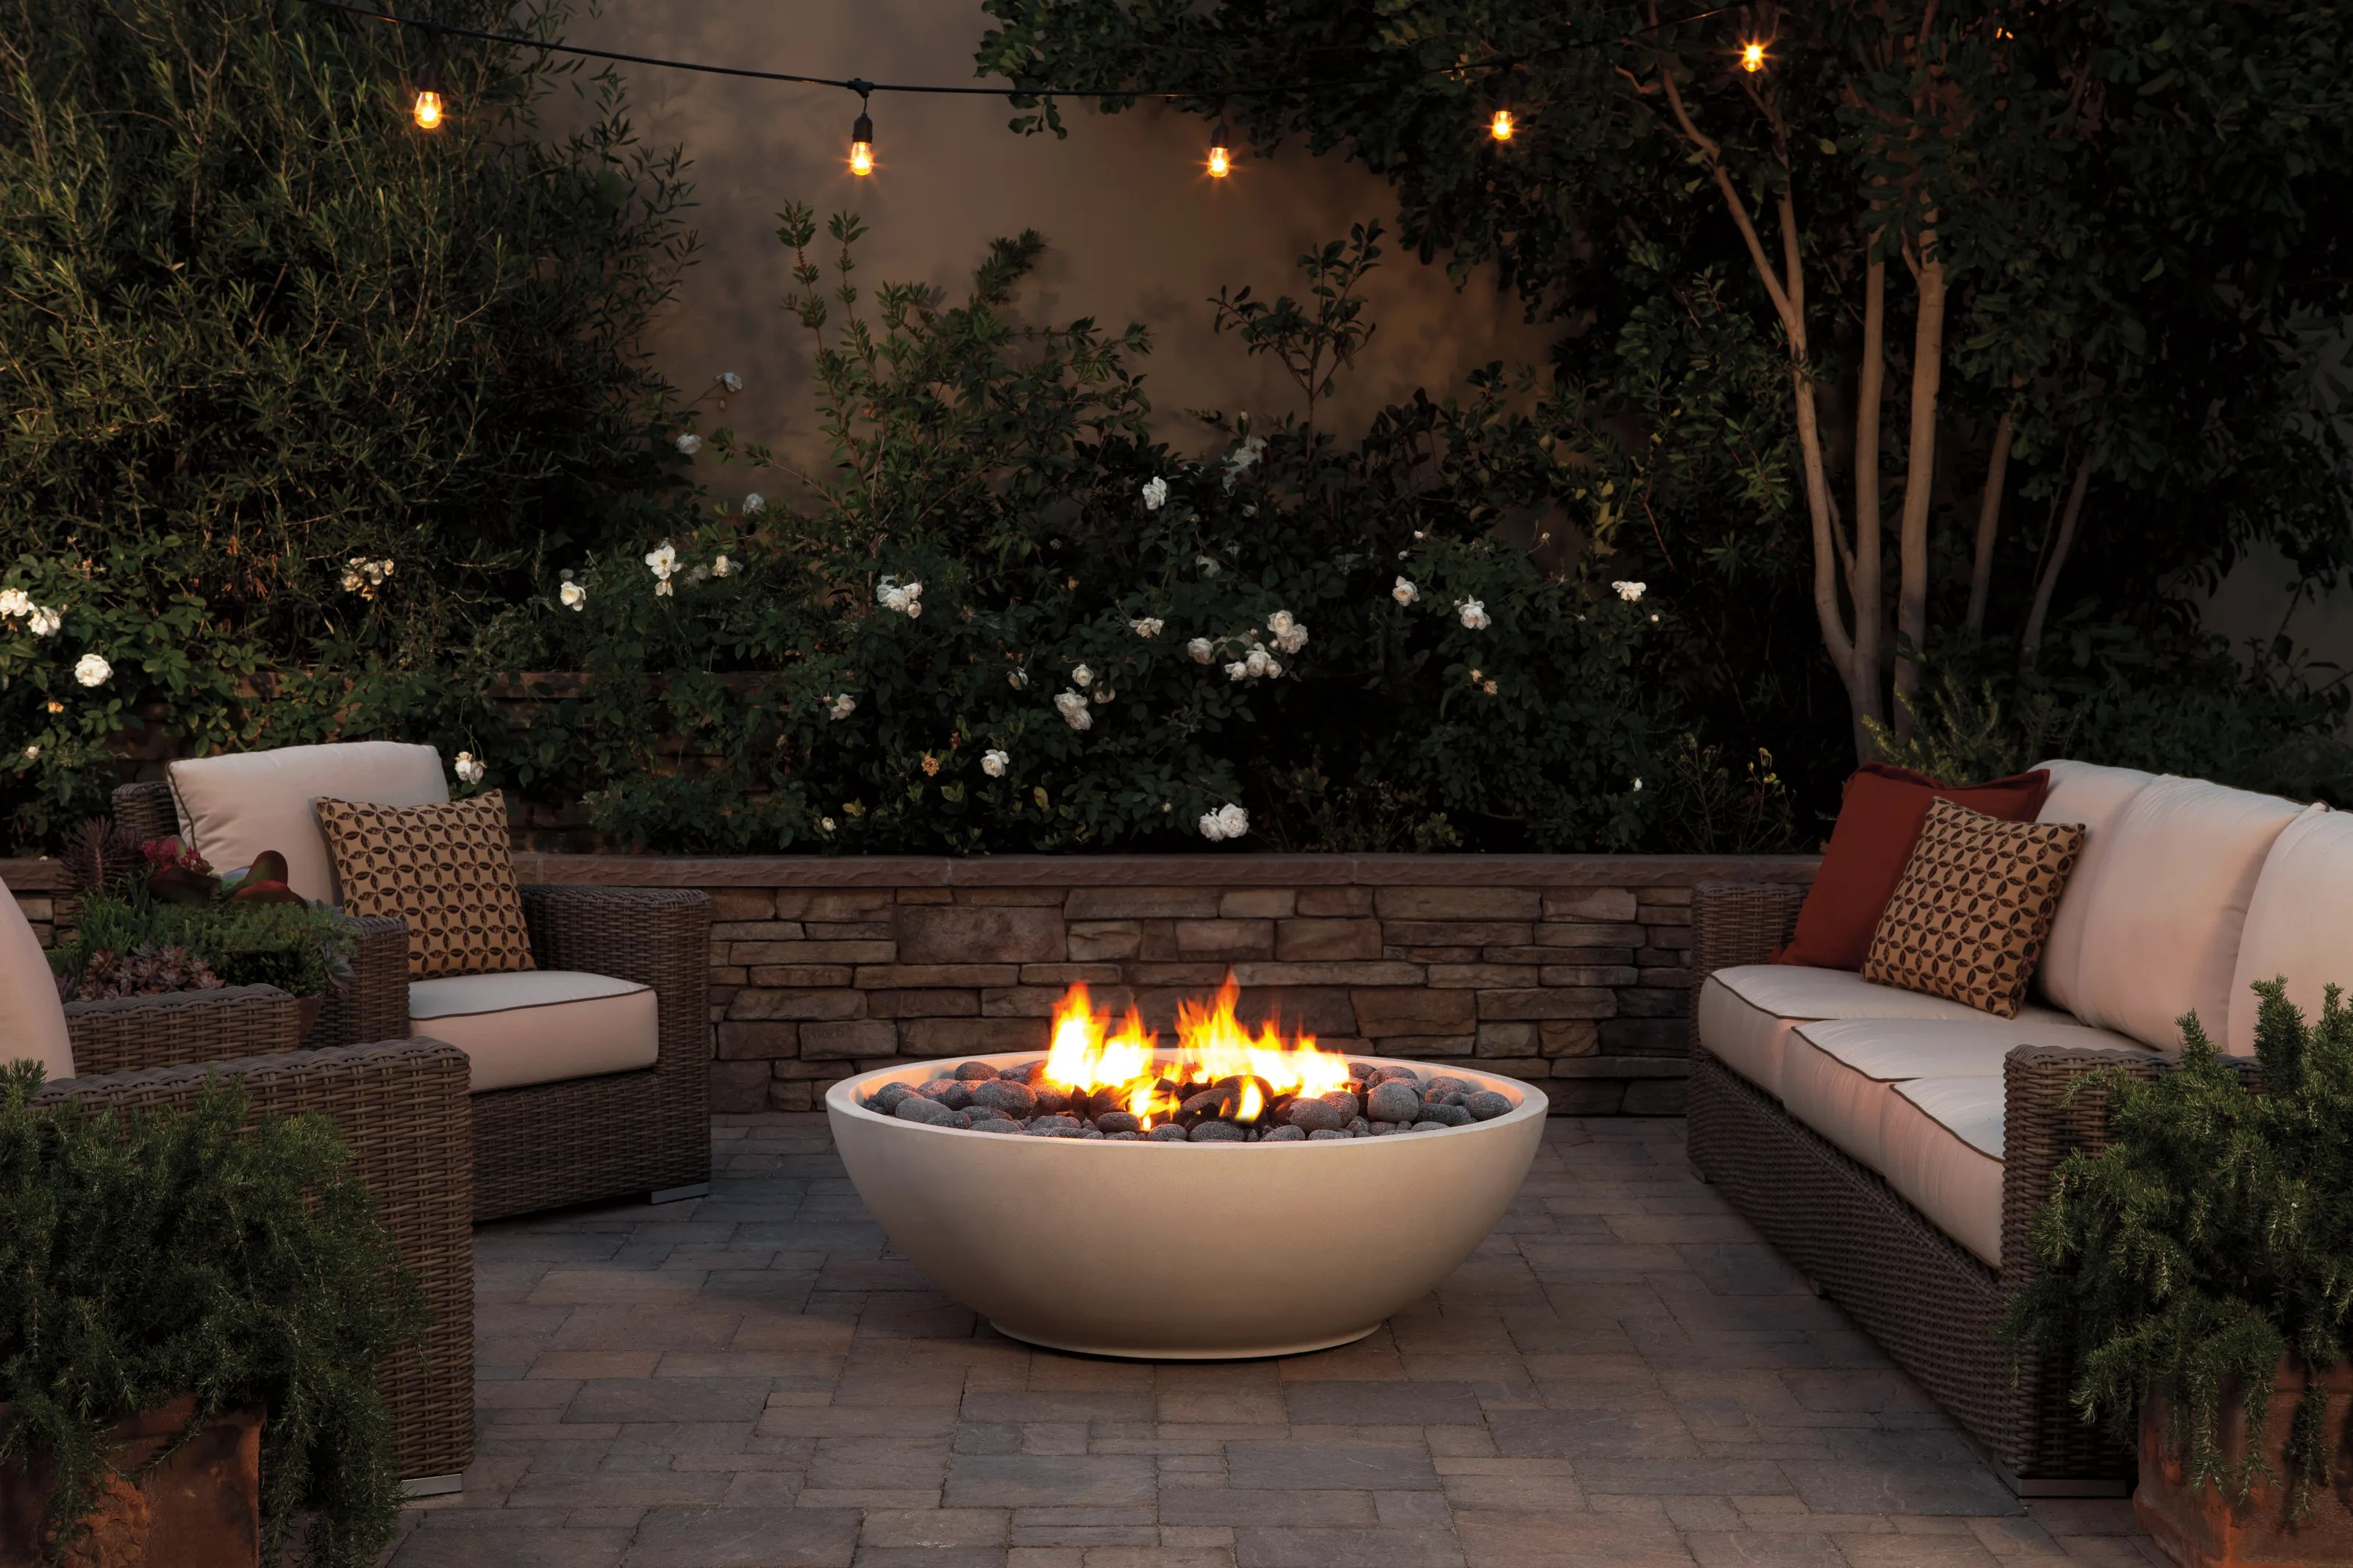 12 Patio Heaters To Make The Most Of A Terrace In Winter